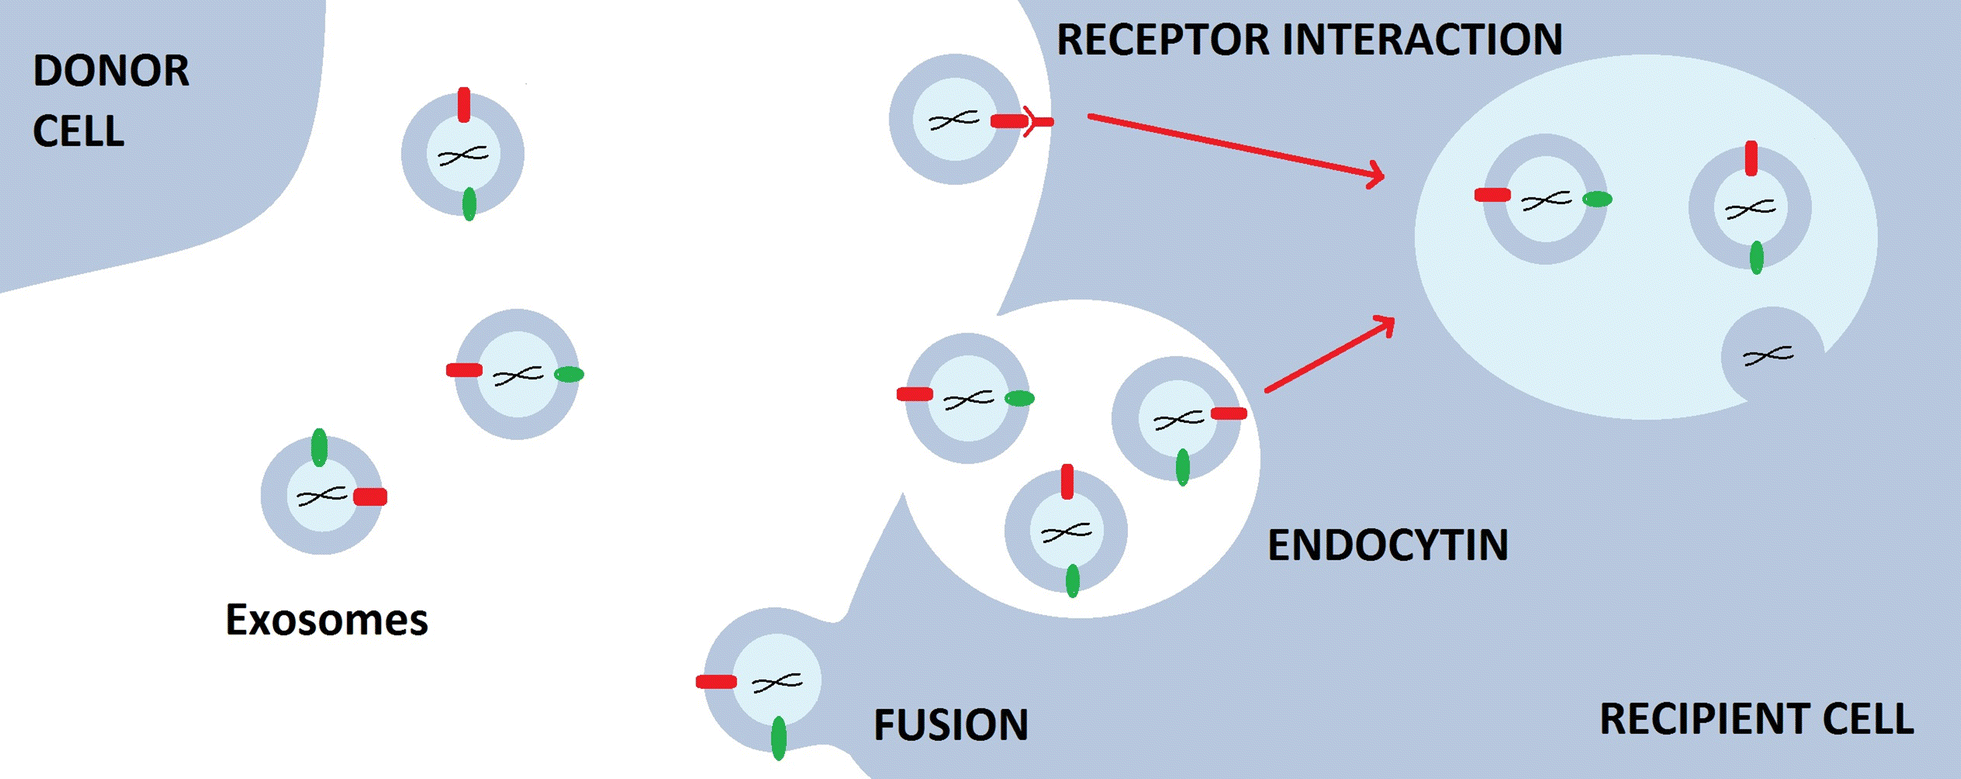 Recent Advancements In The Use Of Exosomes As Drug Delivery Systems 2009 Saab 9 3 Fuse Diagram Fig 2